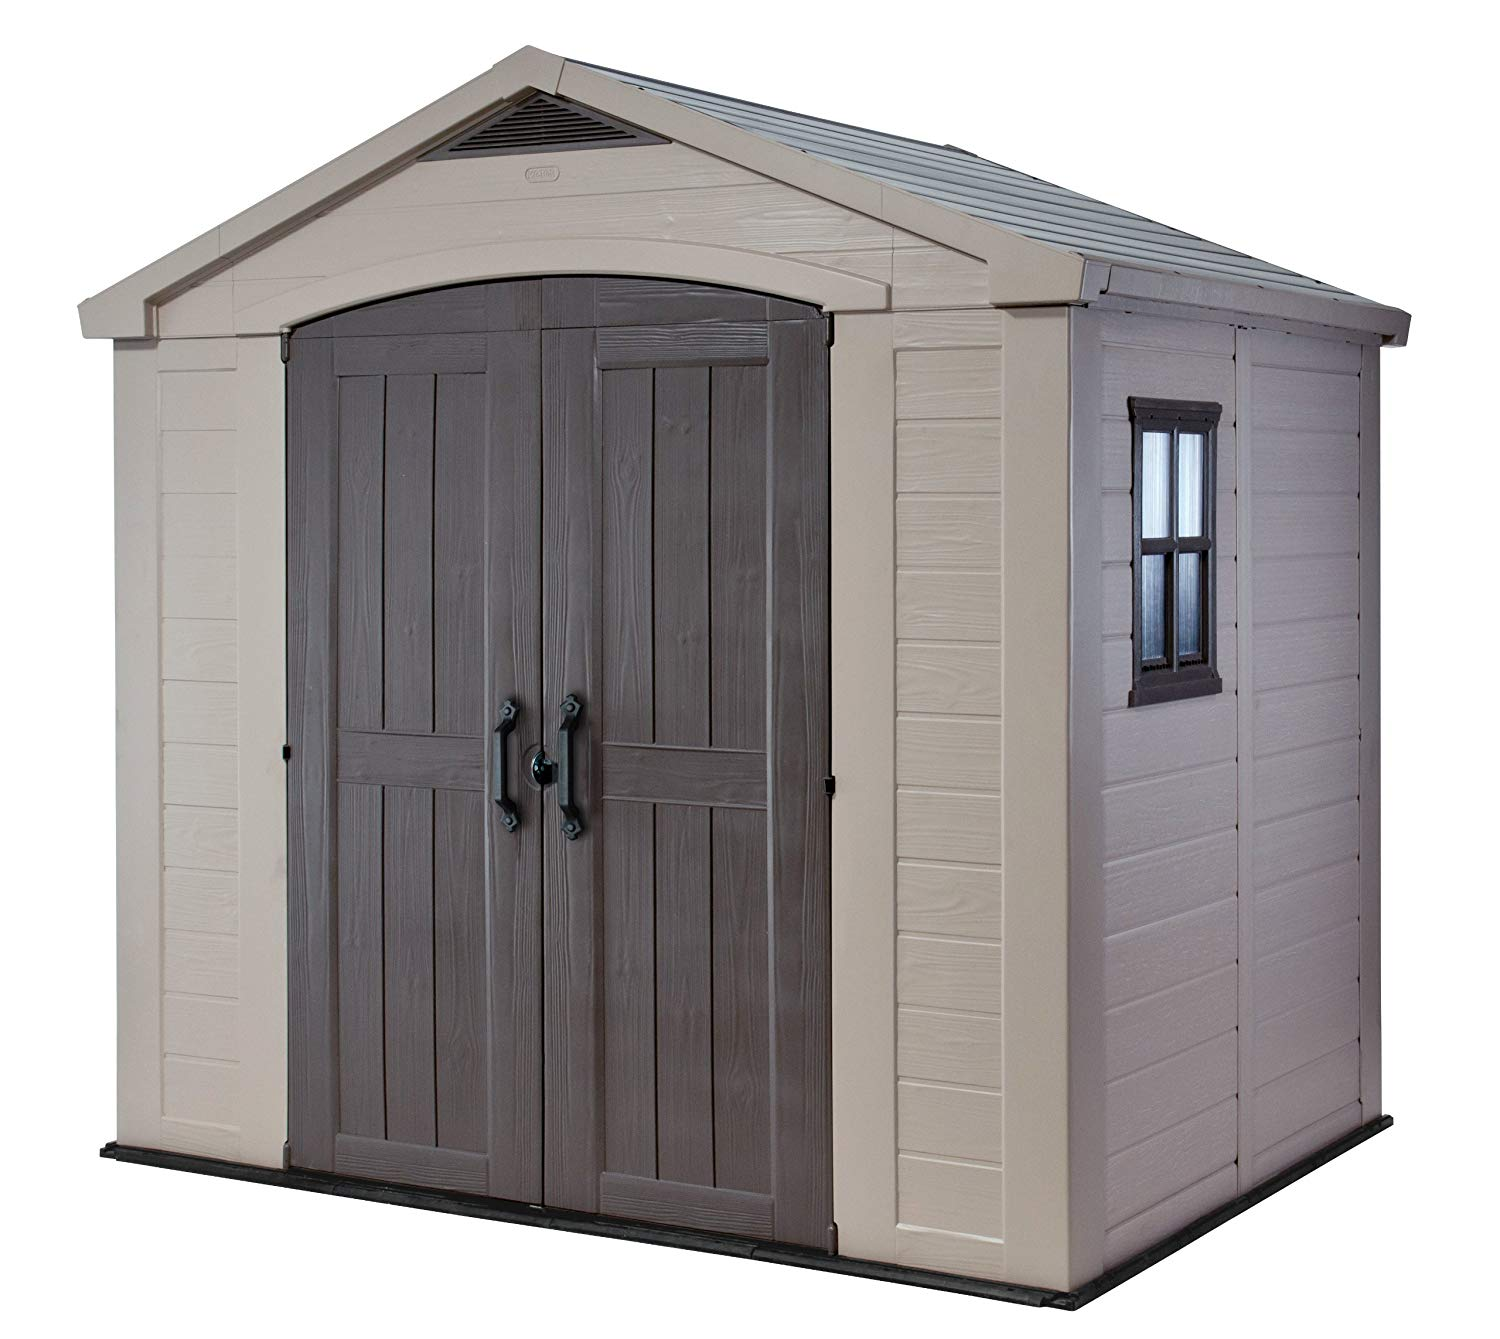 Keter Factor Large 8 x 6 ft. Resin Outdoor Backyard Garden Storage Shed